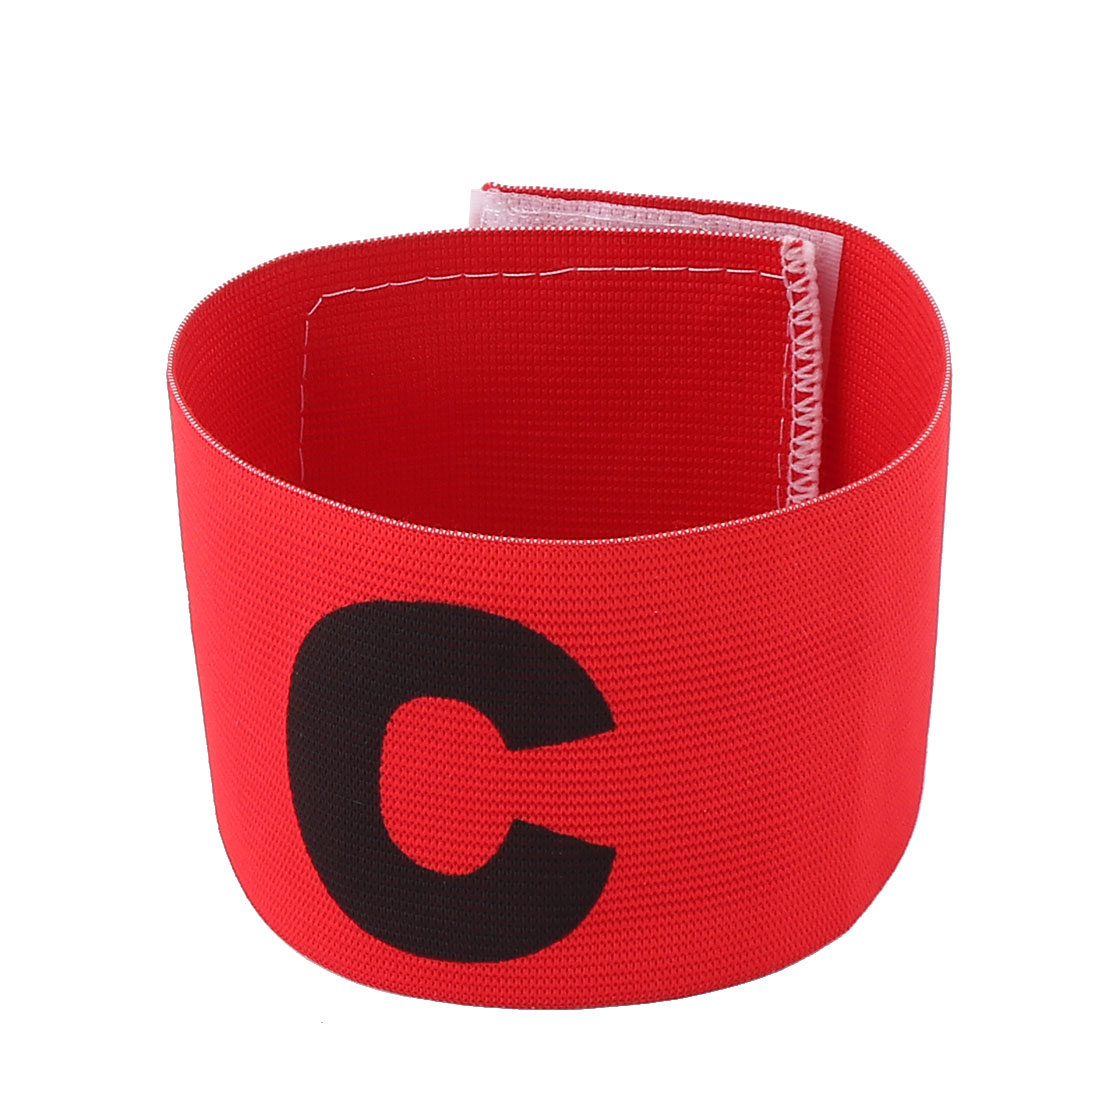 Obvious Symbol Nylon Captain Armband Red for Fooball Soccer Game